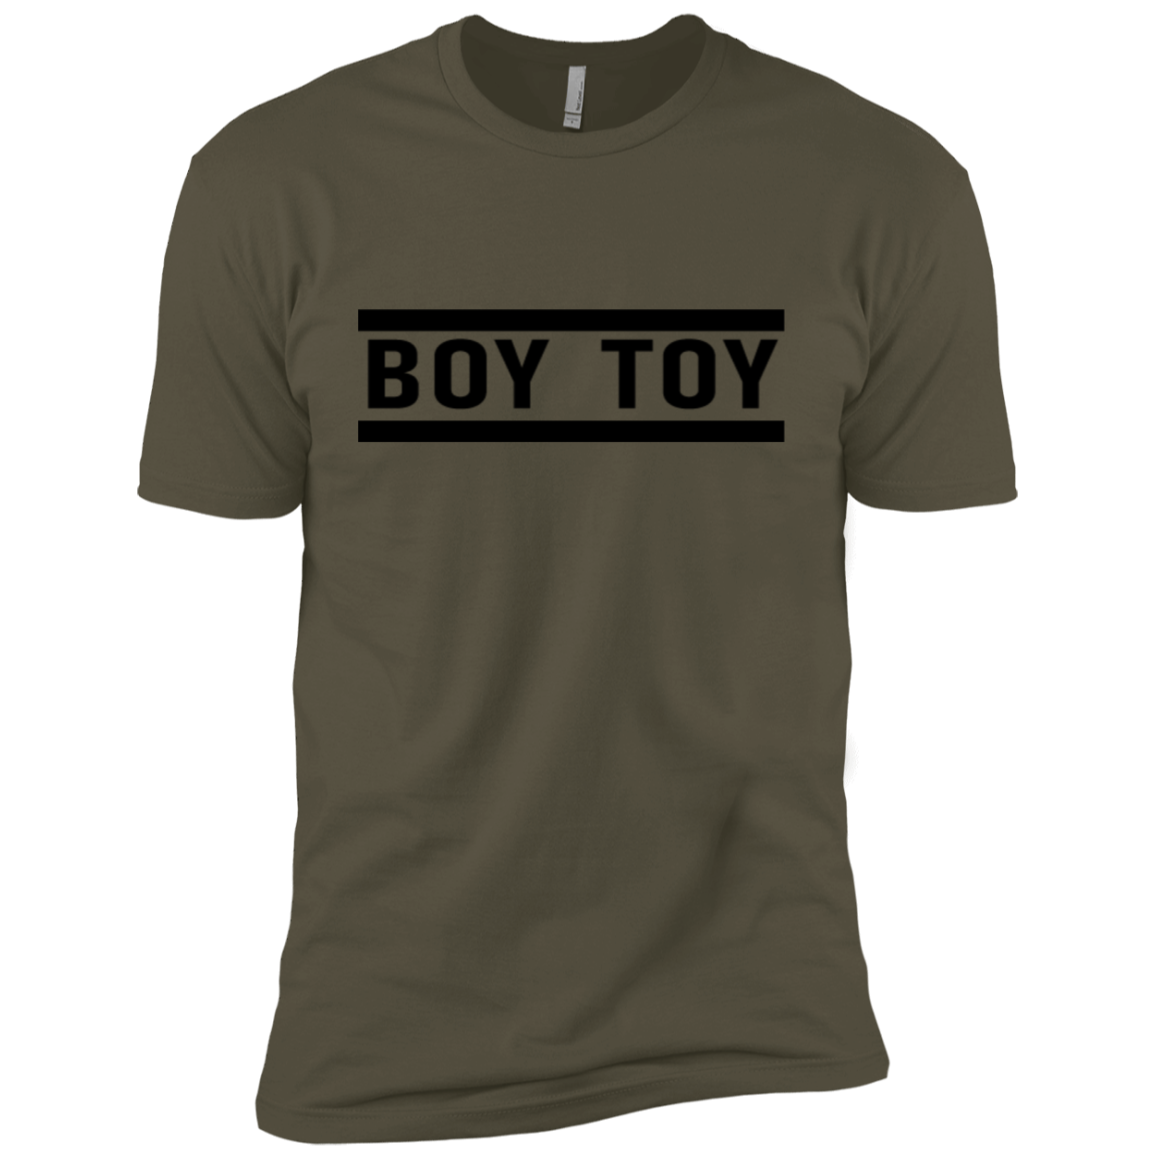 Boy Toy Men's Classic Tee